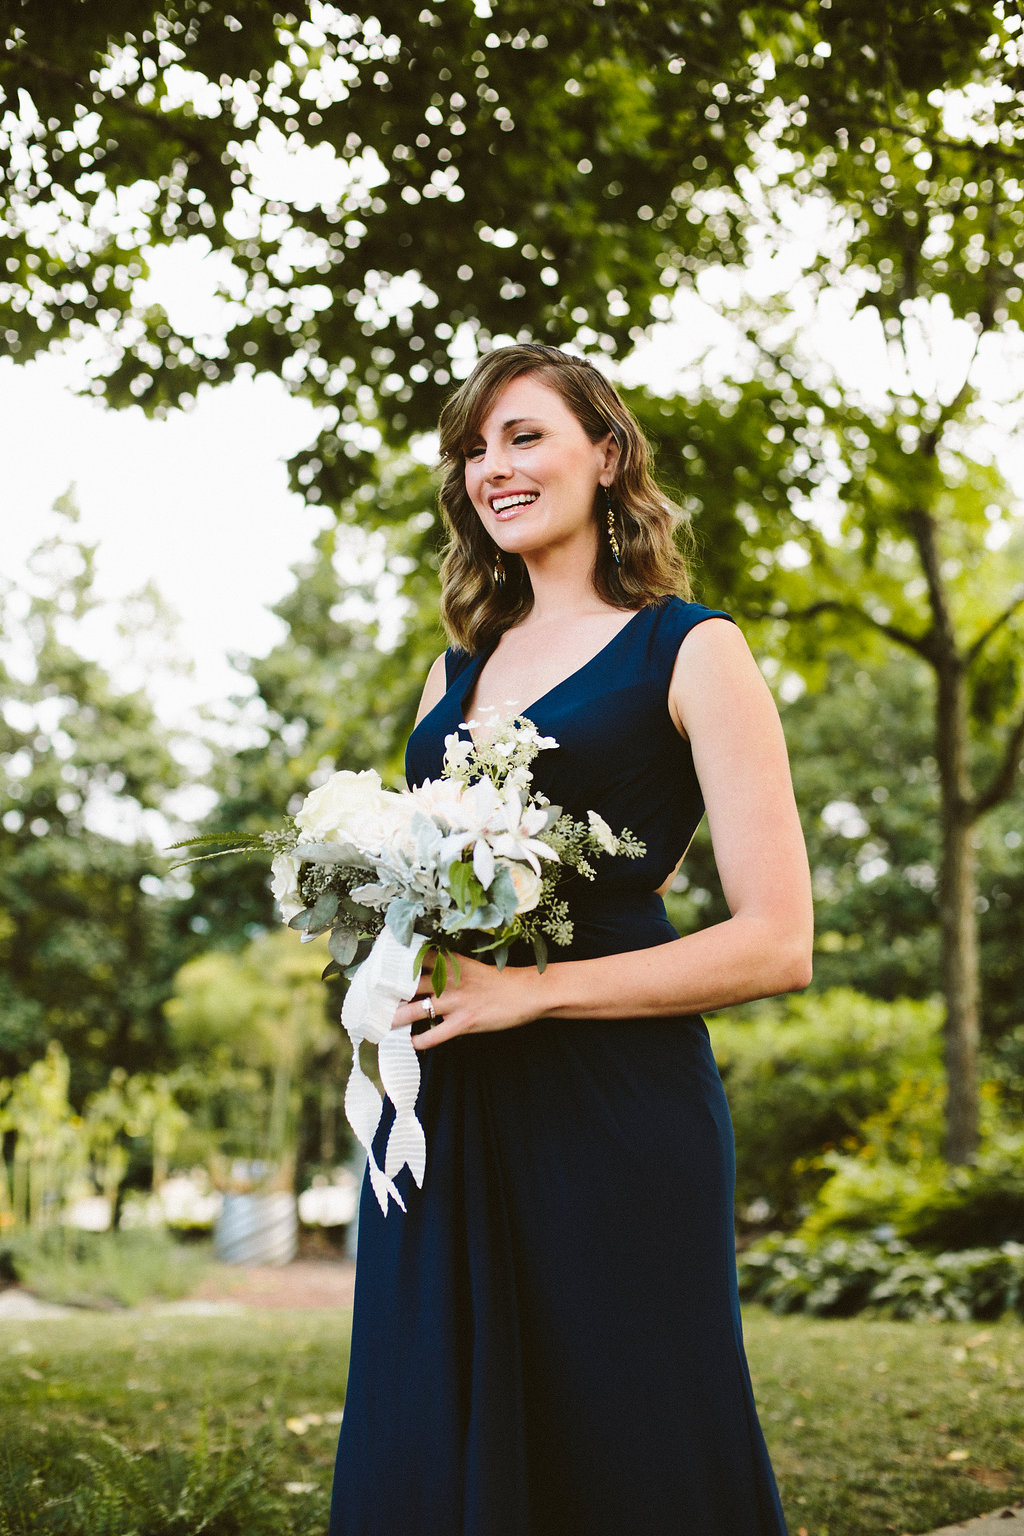 Bridemaid Bouquet | Philosophy Flowers | Blue Bridesmaid Dress